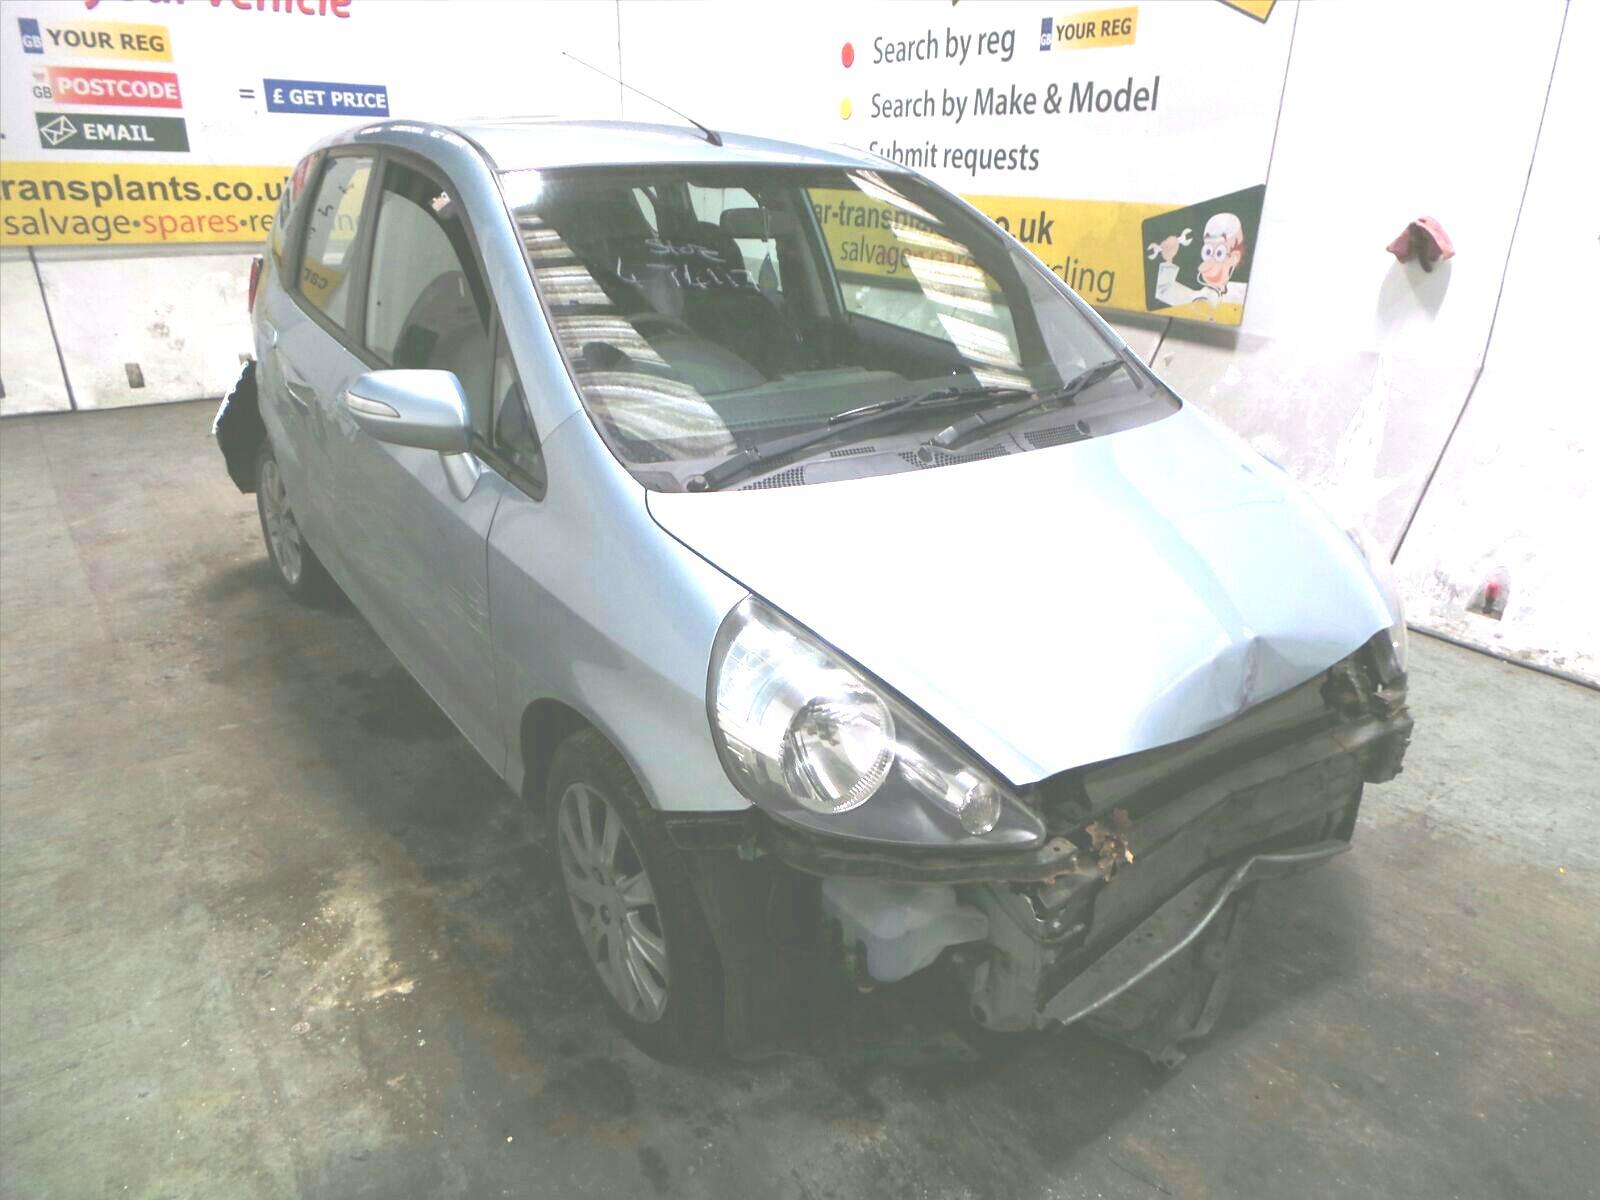 Honda Jazz 2002 To 2004 SE 5 Door Hatchback